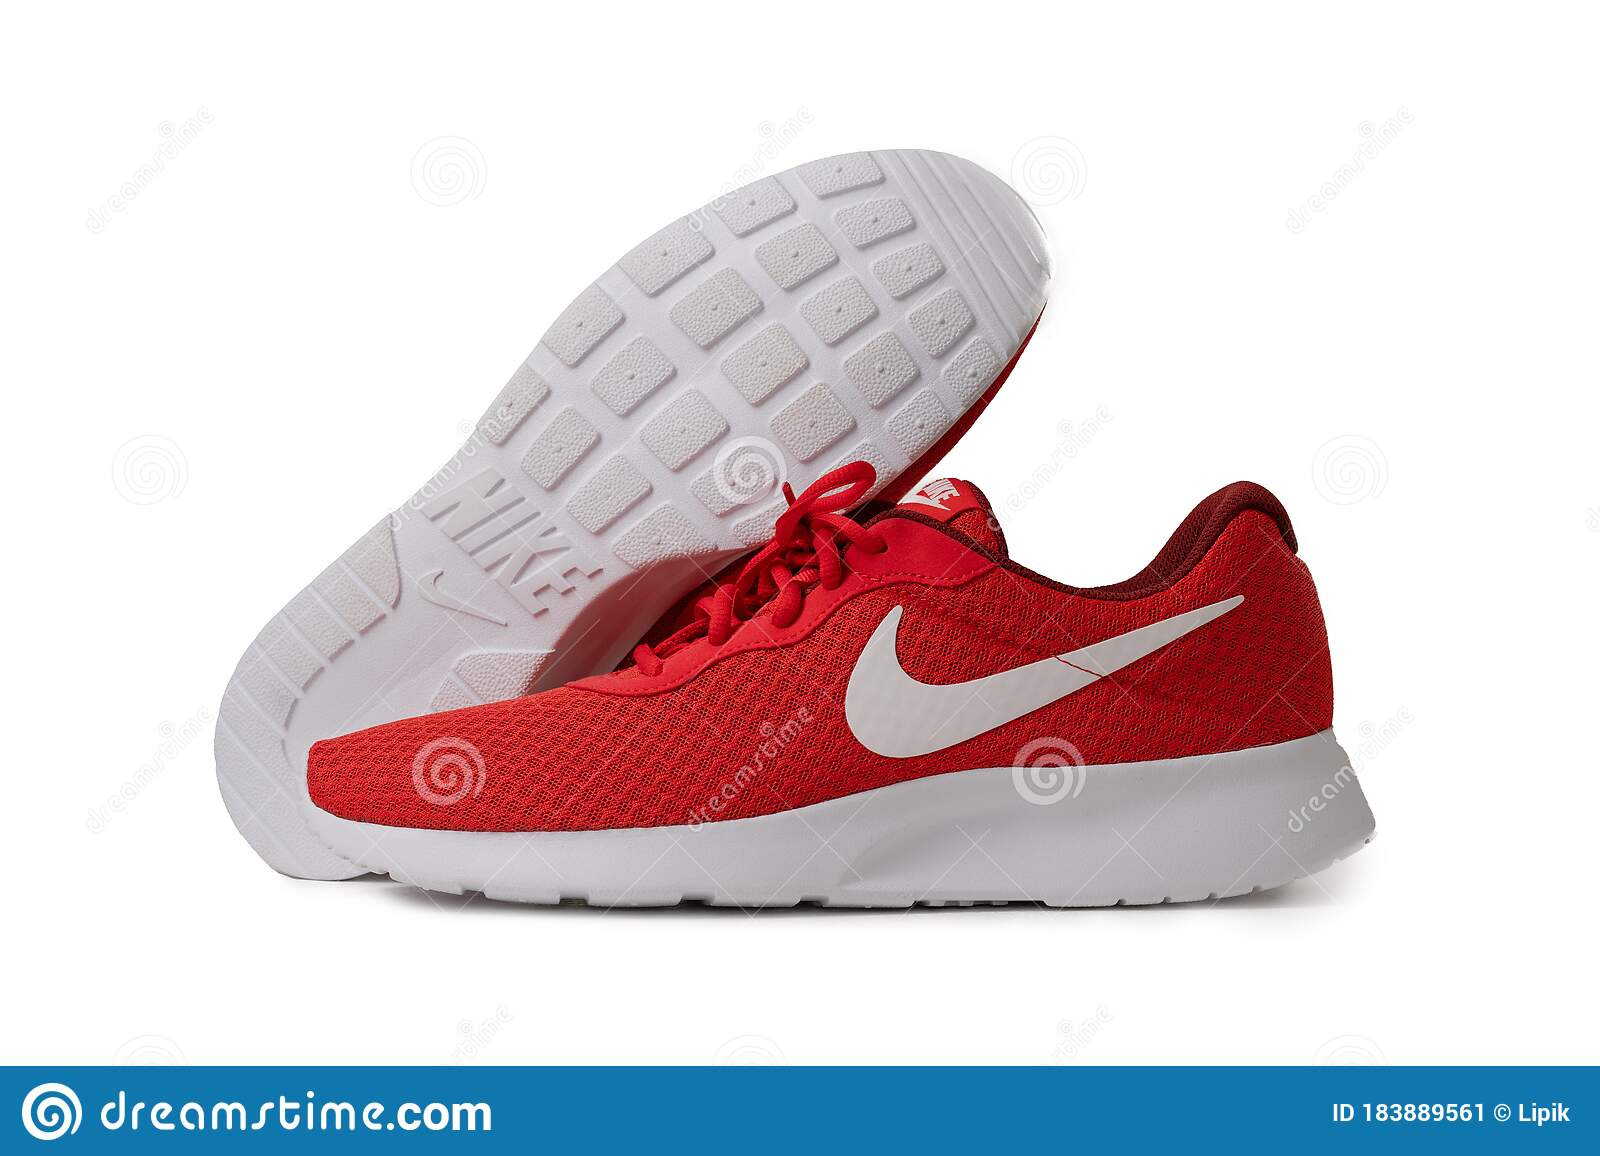 Red Nike Brand Sneakers. Lightweight